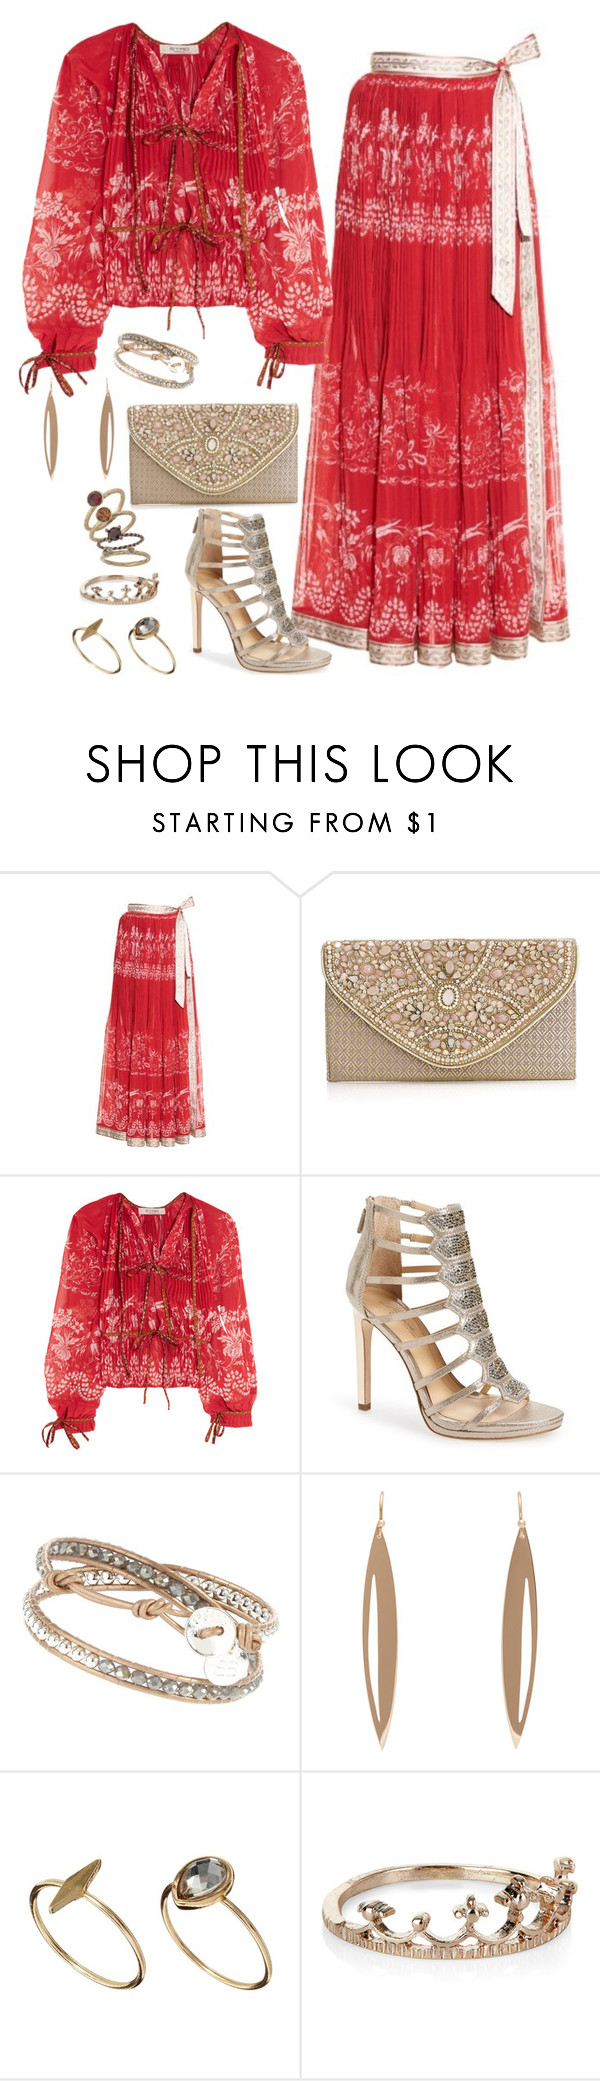 """Untitled #3193"" by fashion-nova ❤ liked on Polyvore featuring Etro, Accessorize, Imagine by Vince Camuto, Monique Péan and ASOS"